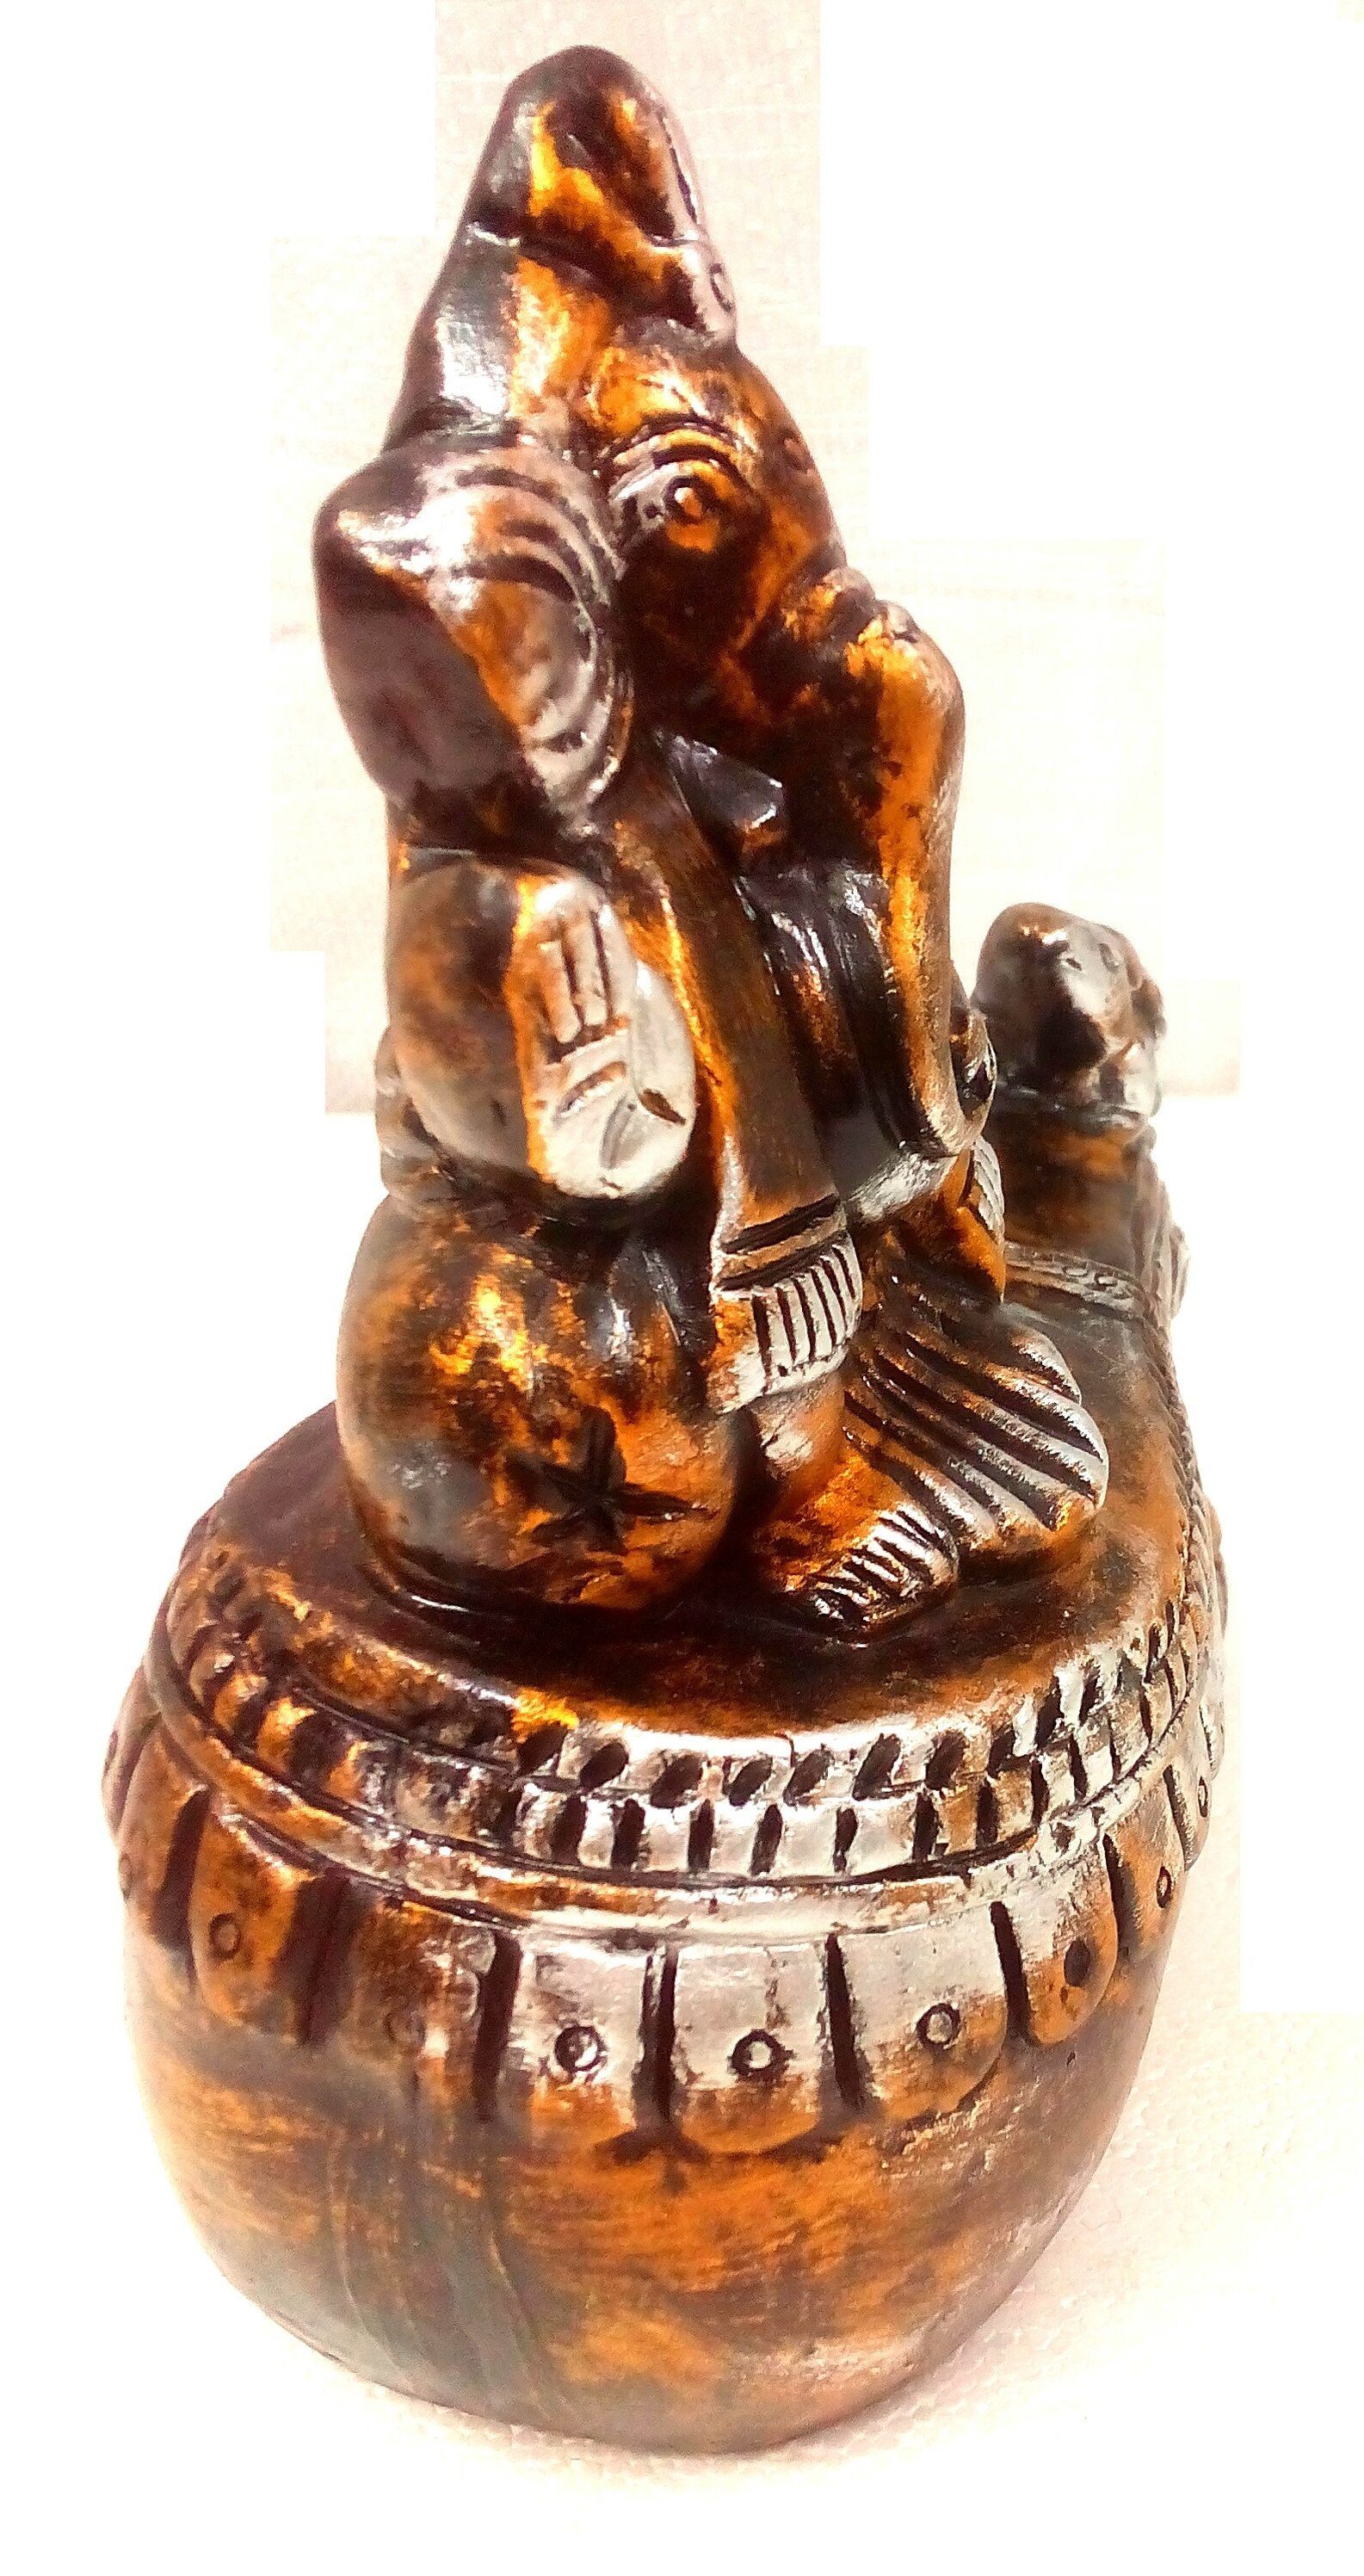 Handcrafted Terracotta Home Decor Ganesha Is Handmade By Skilled